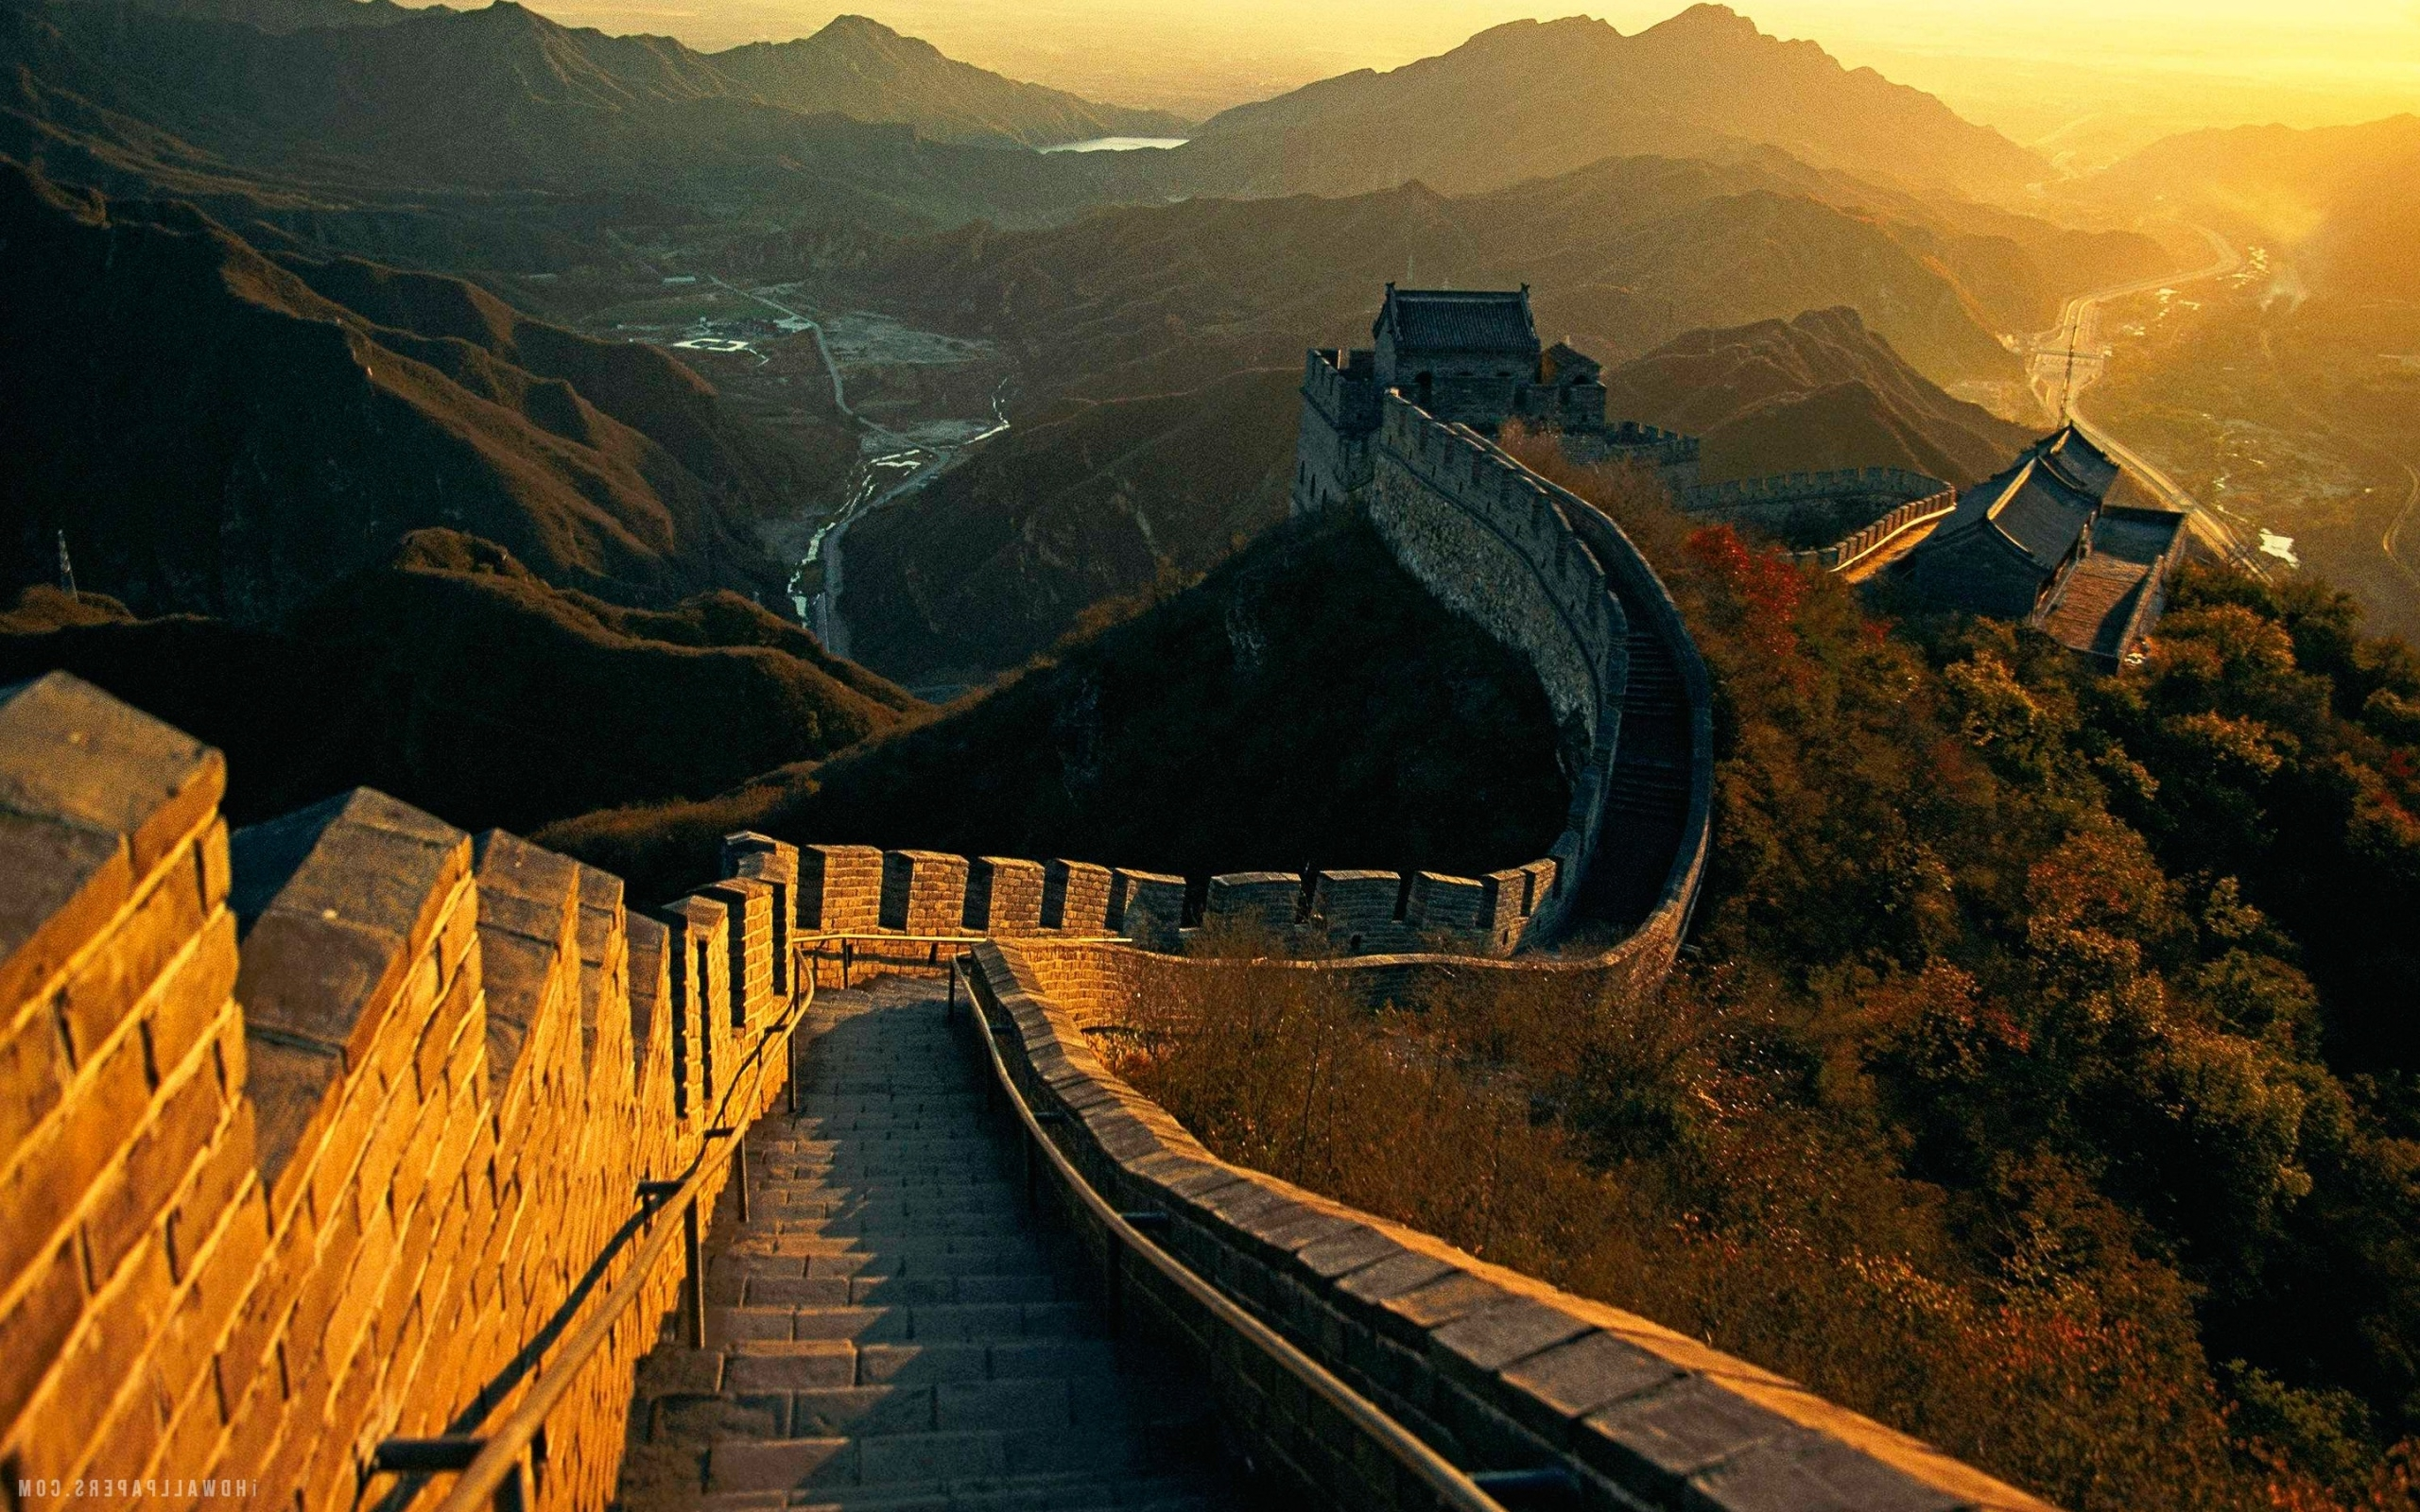 2017 Great Wall Of China Wallpapers, Top Rated High Hd Quality Great With Regard To Great Wall Of China 3D Wall Art (View 1 of 15)